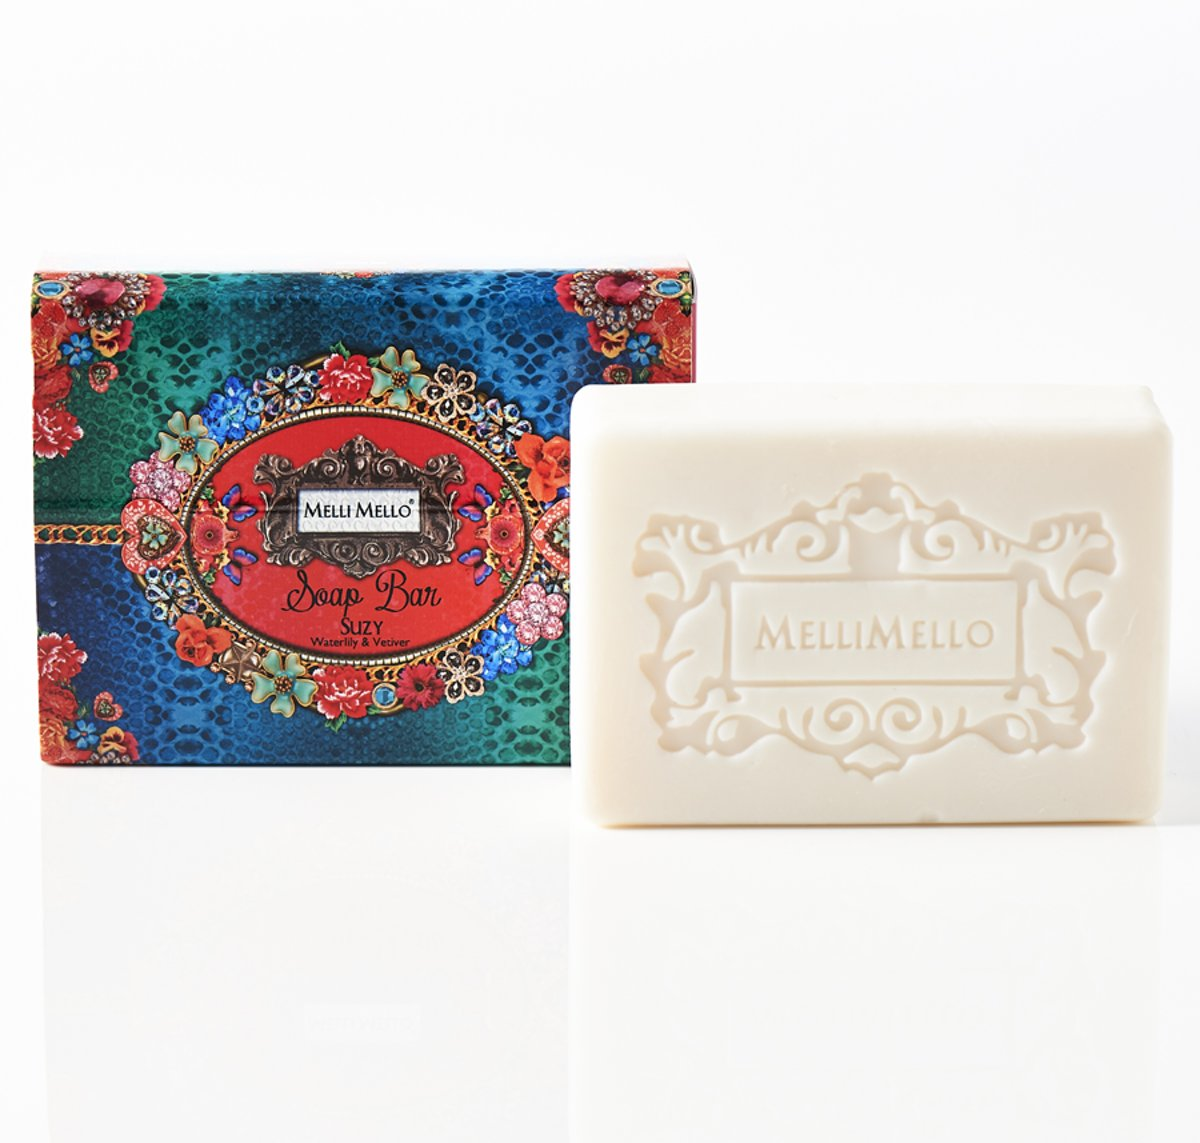 Melli Mello Soap Bar Suzy